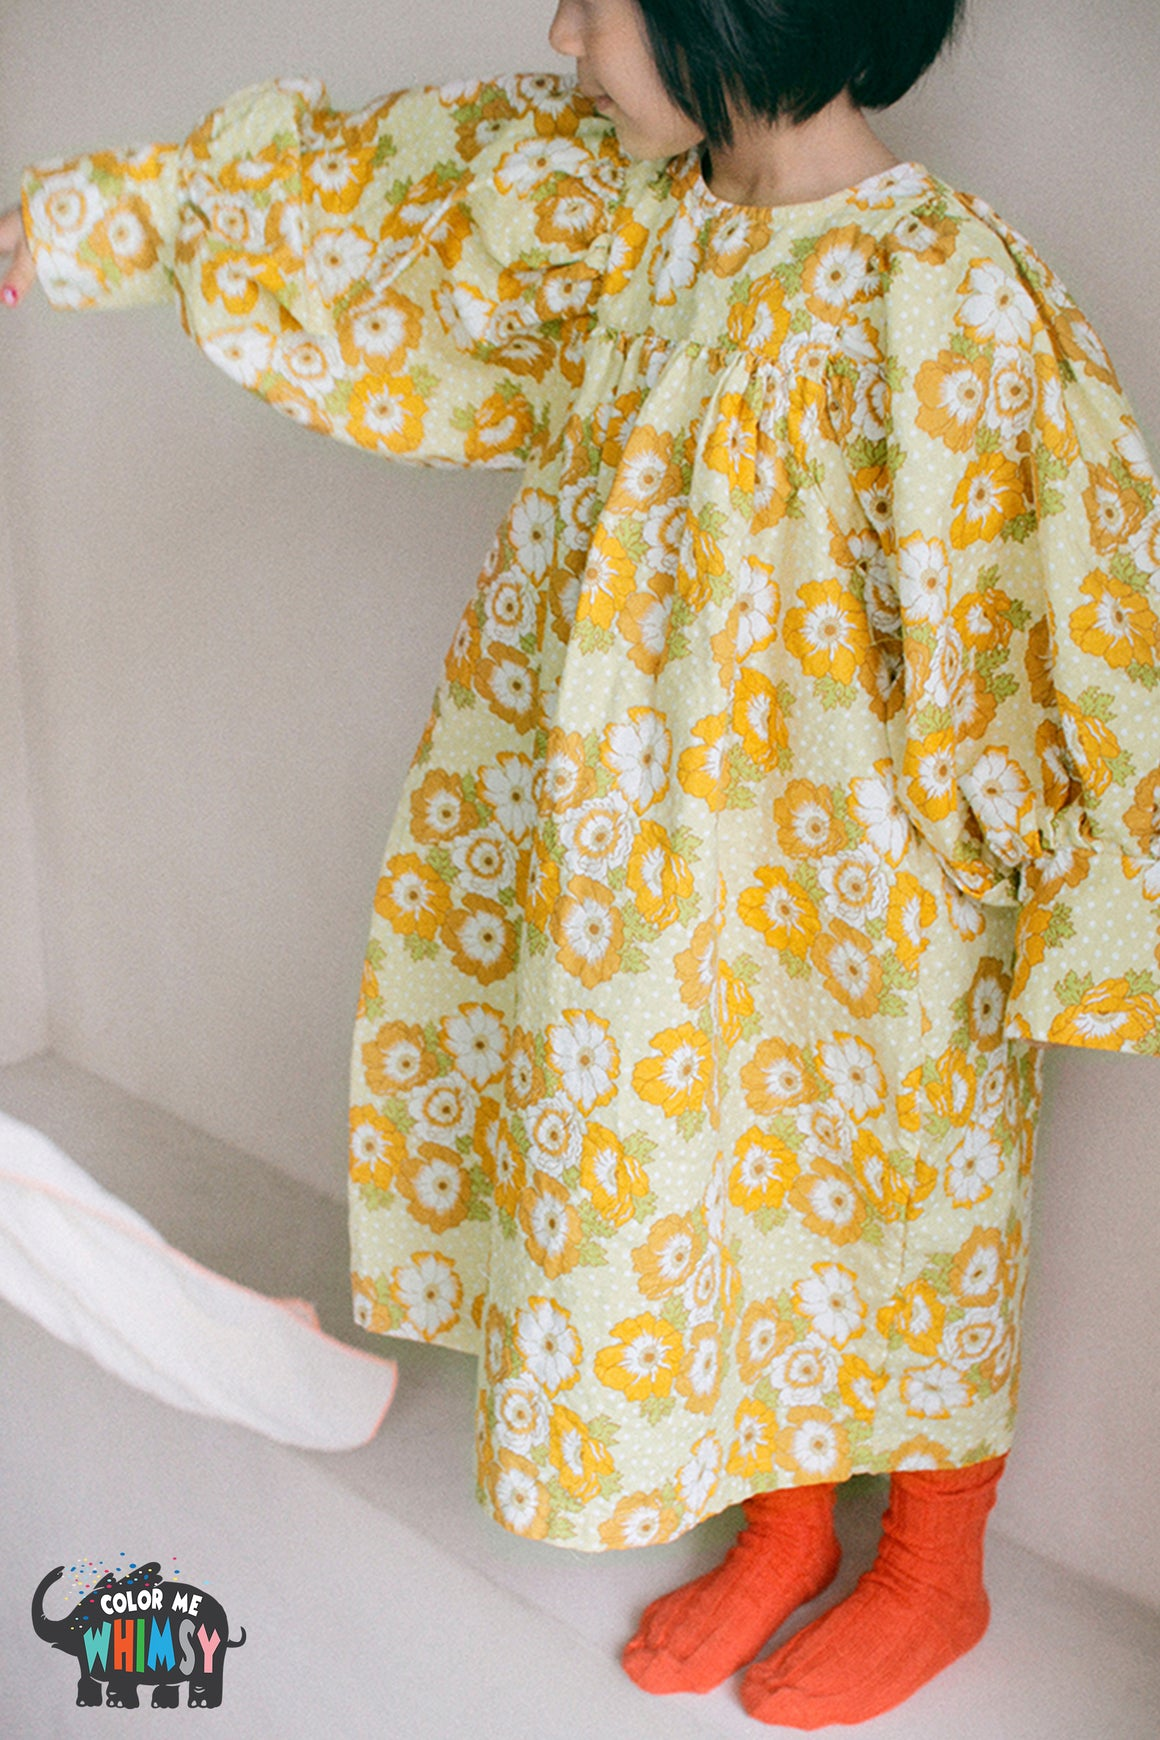 BN Retro Dress - Two Patterns - Color Me WHIMSY